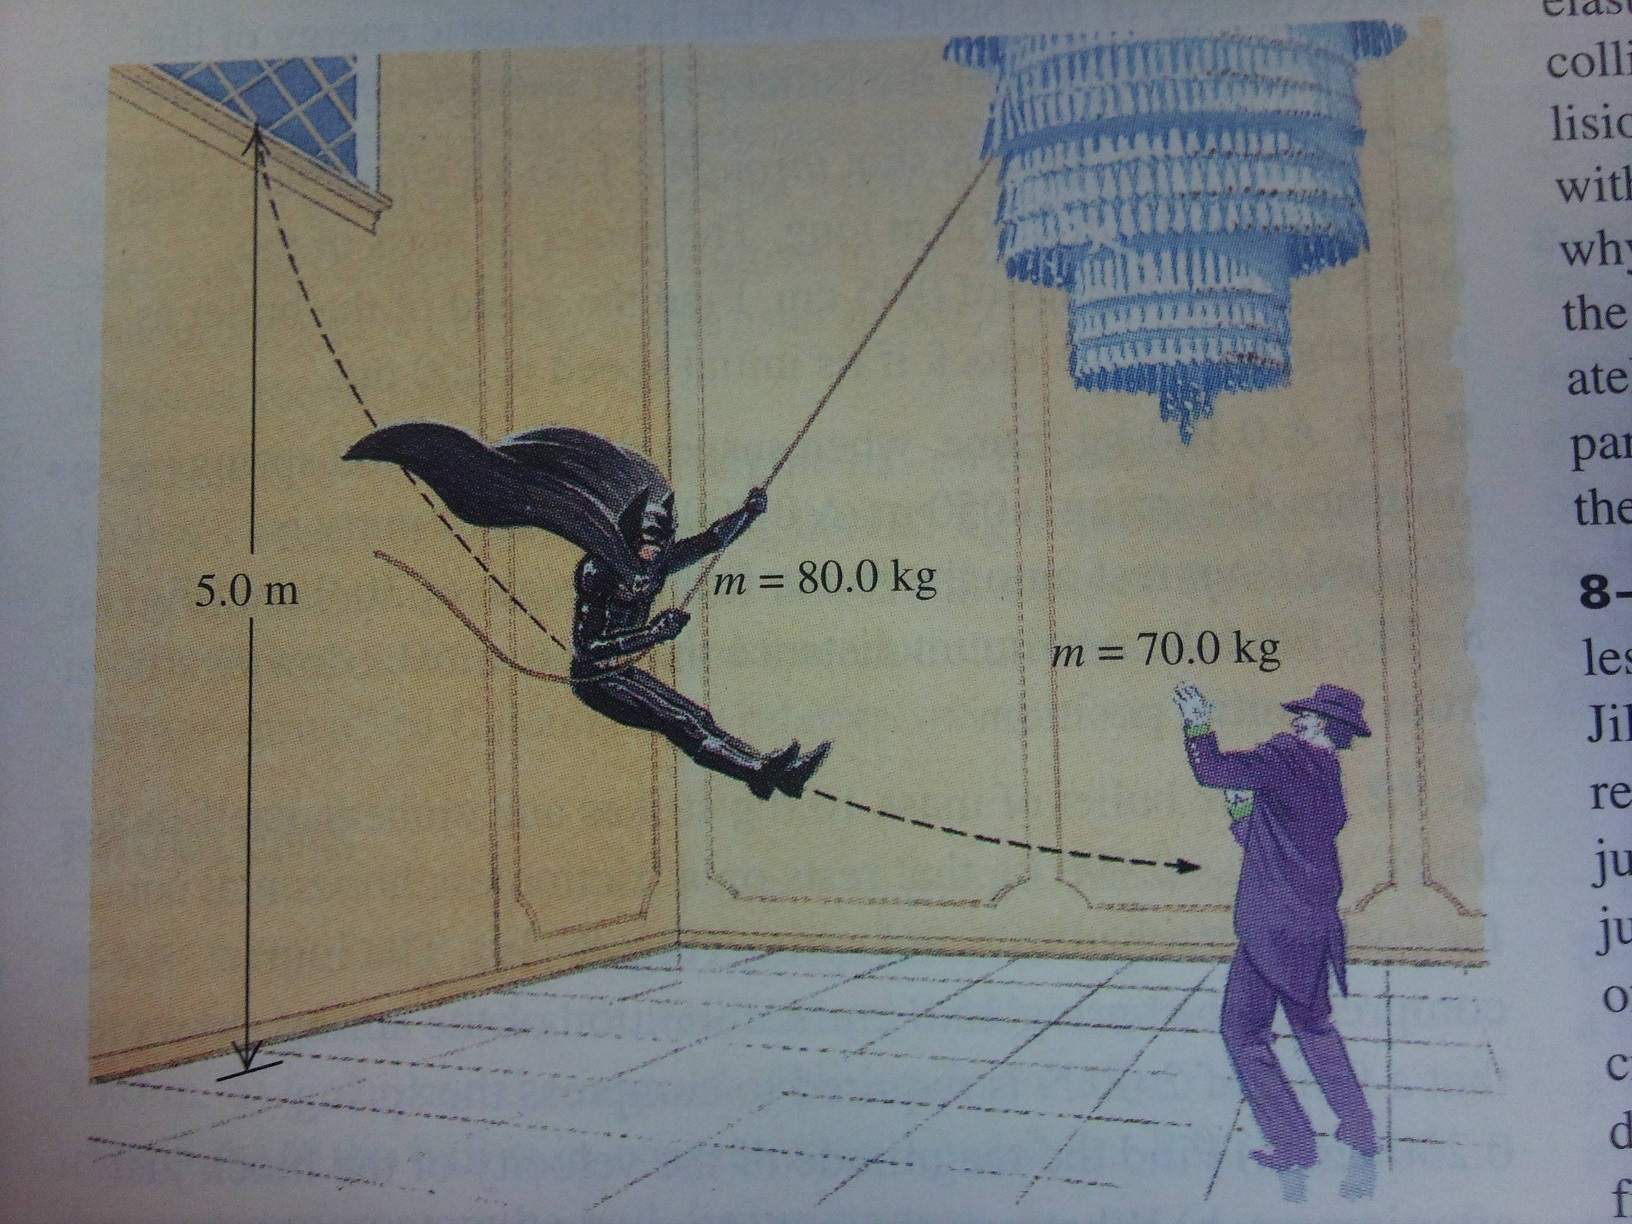 Found this in my physics text book.